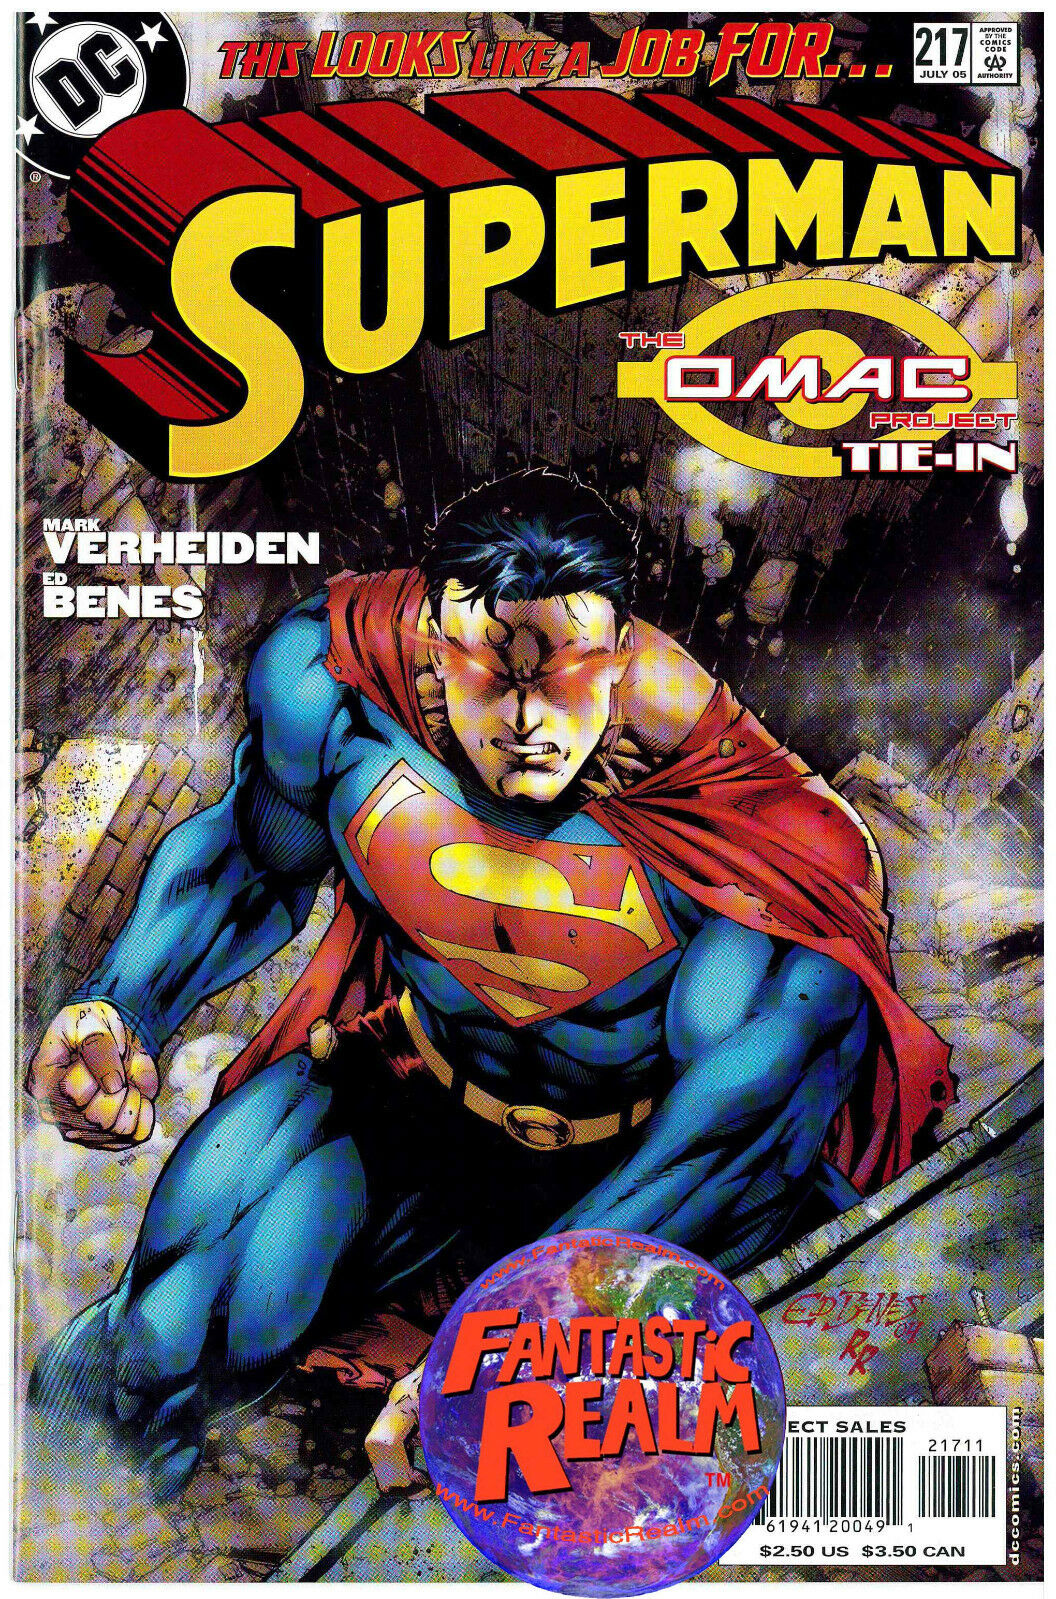 SUPERMAN #217, 219 & 642 THE OMAC PROJECT TIE-IN DC COMICS